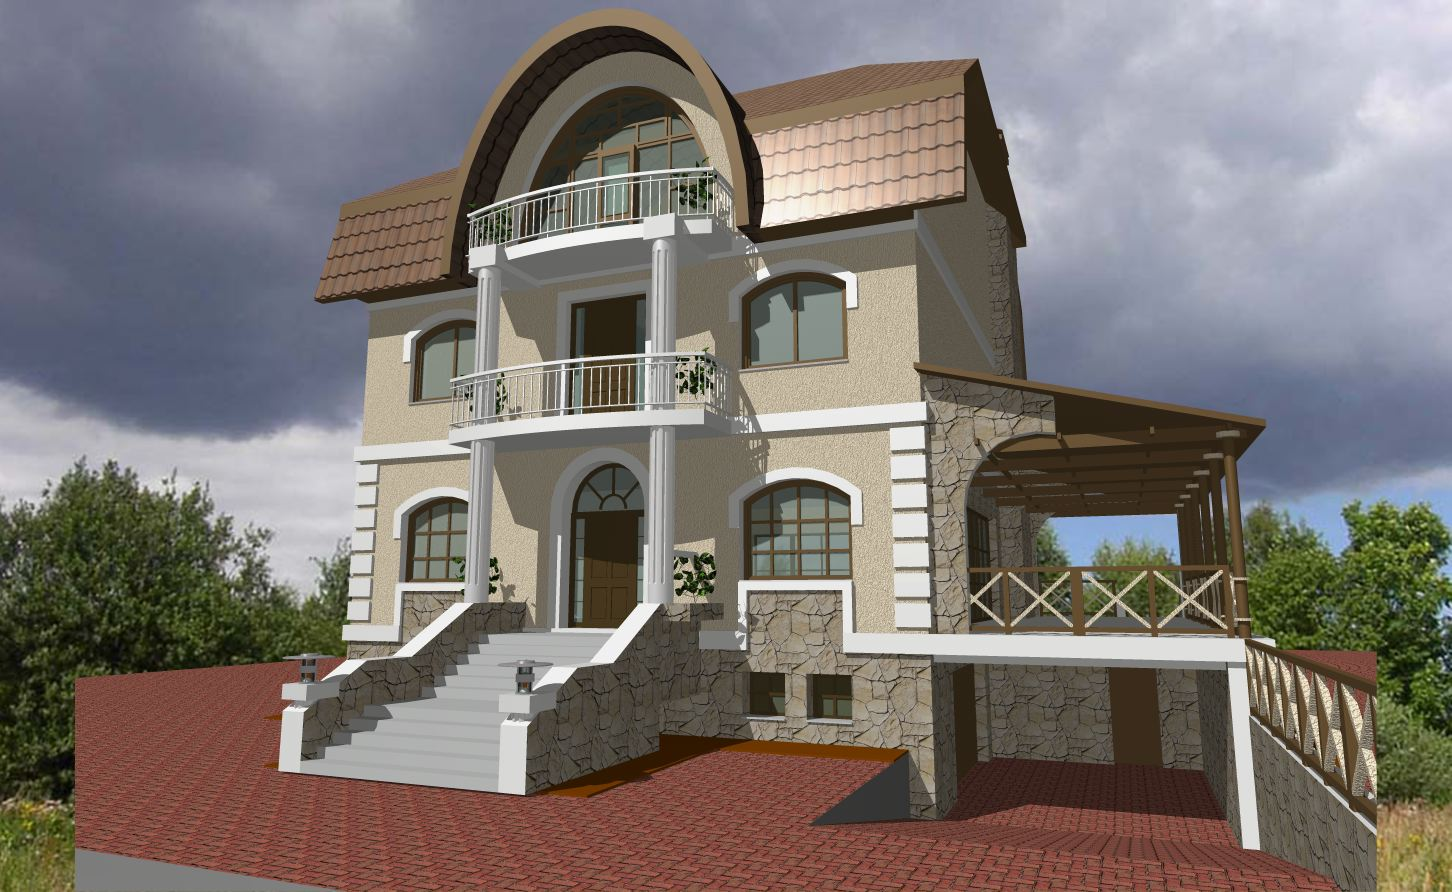 Foundation dezin decor exterior elevations view 39 s for Design your home exterior